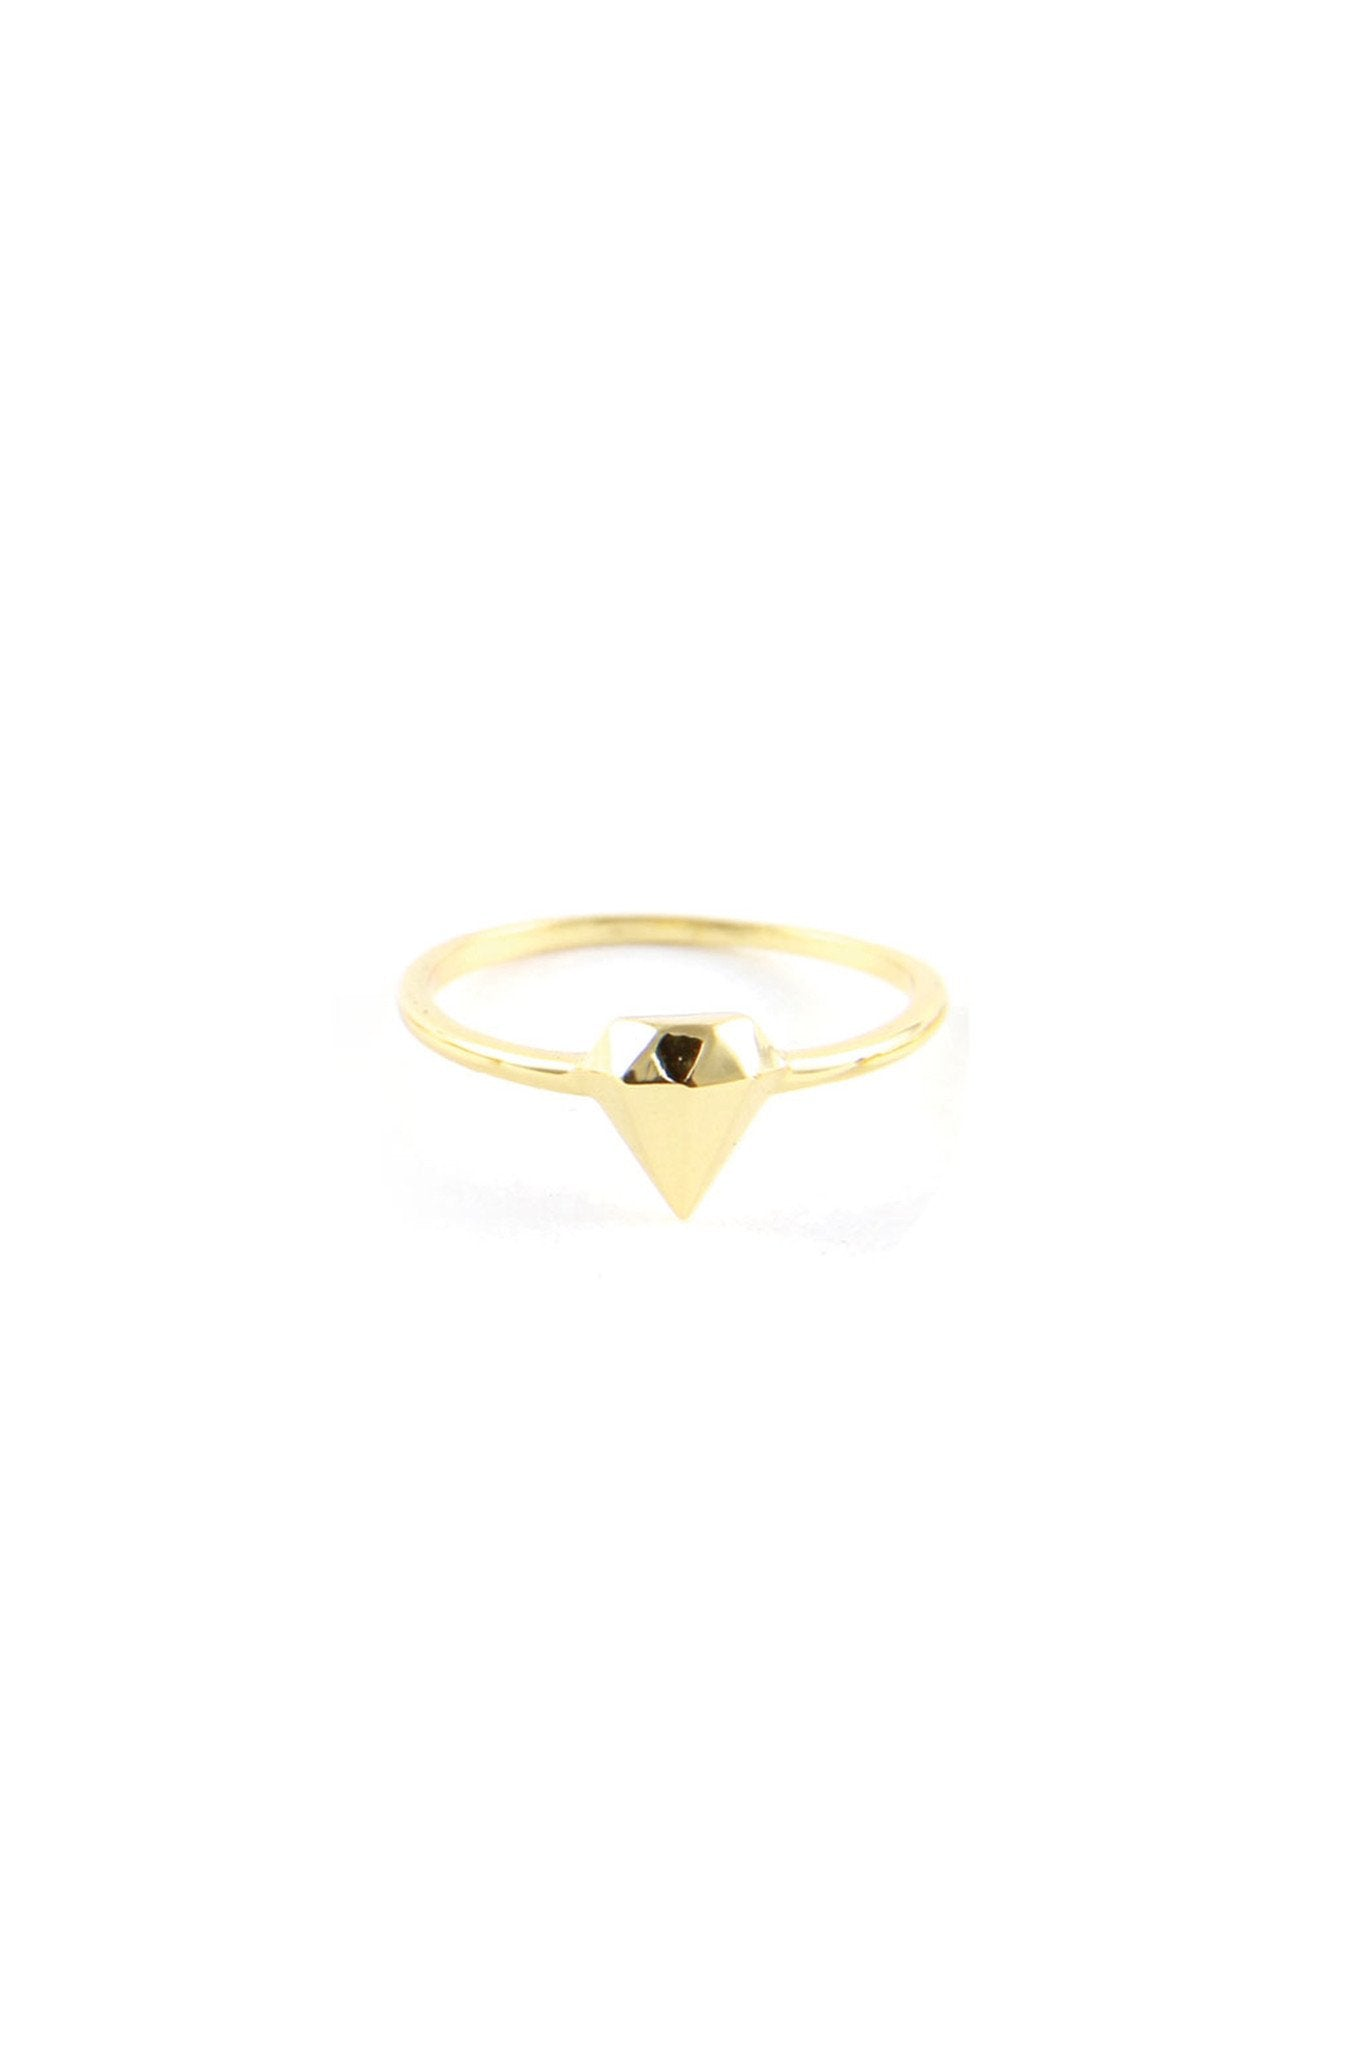 Lucky Charm Ring in Gold with Diamond Shape